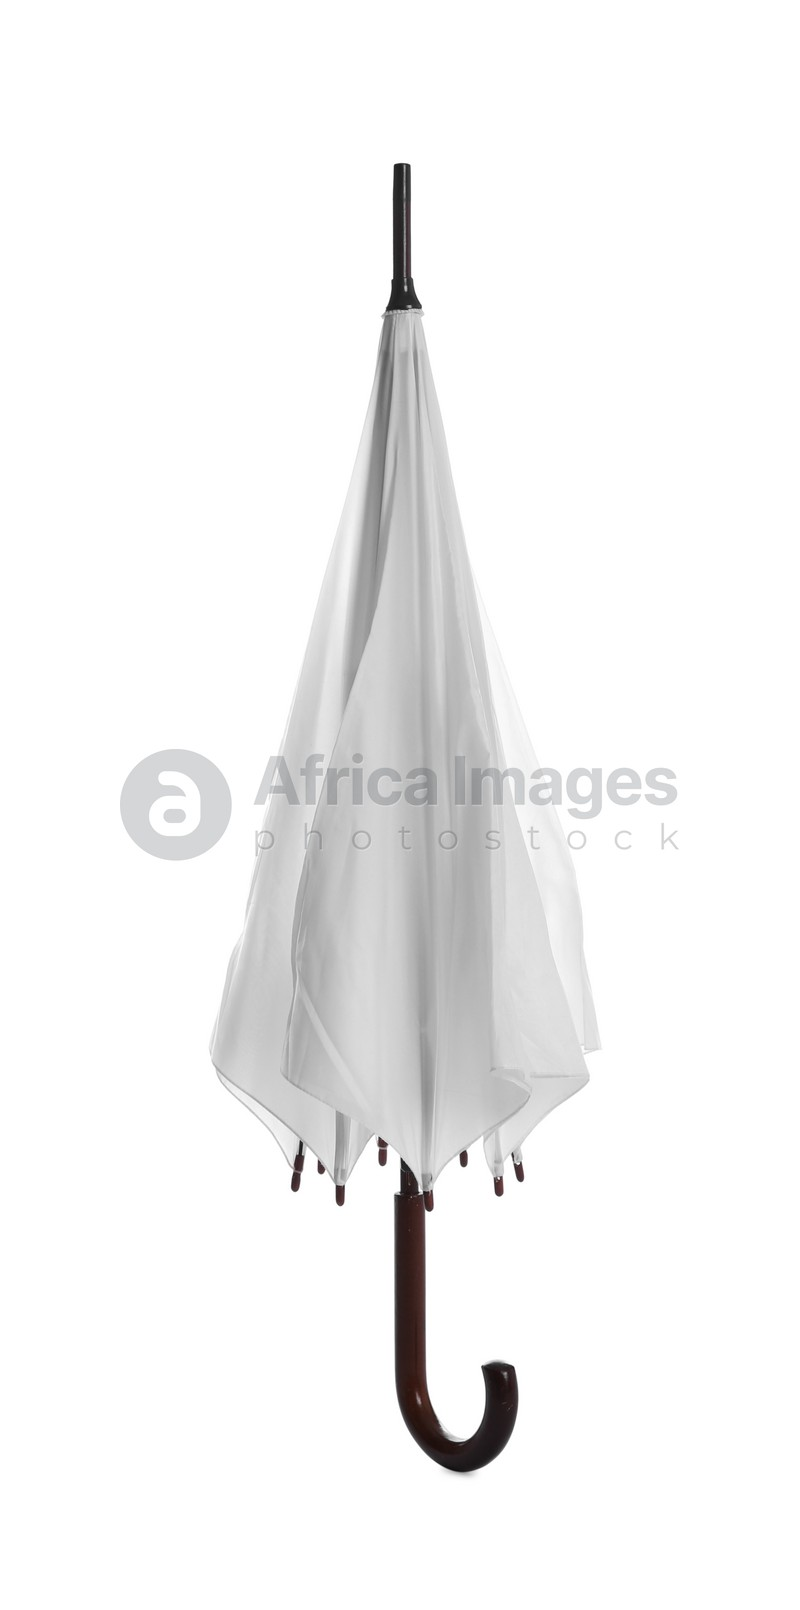 One closed straight umbrella isolated on white